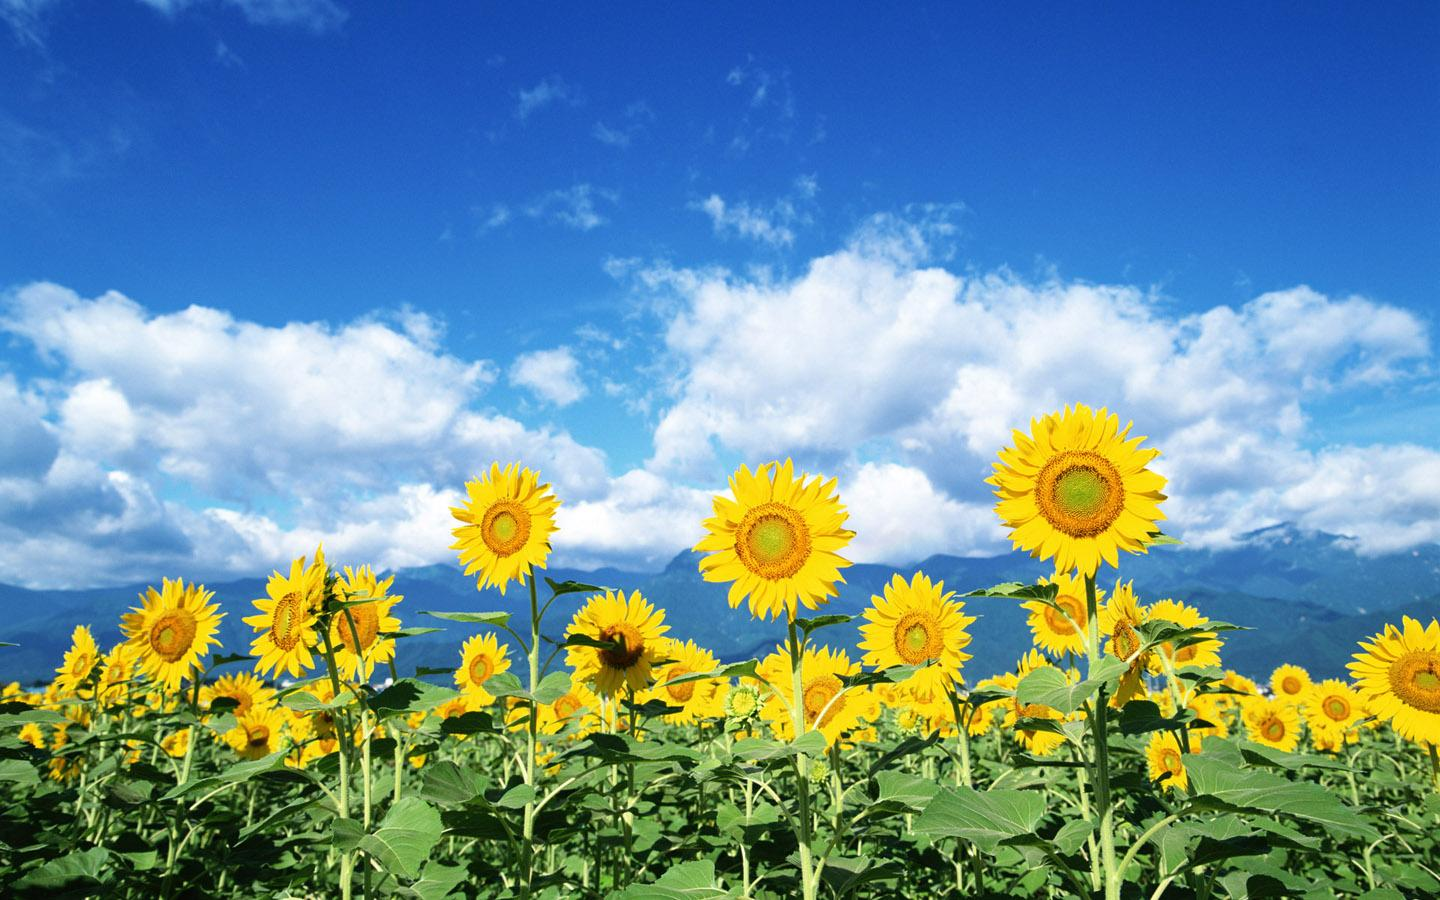 Sunflowers will clean up radiation leaked from power plant| Cali 551